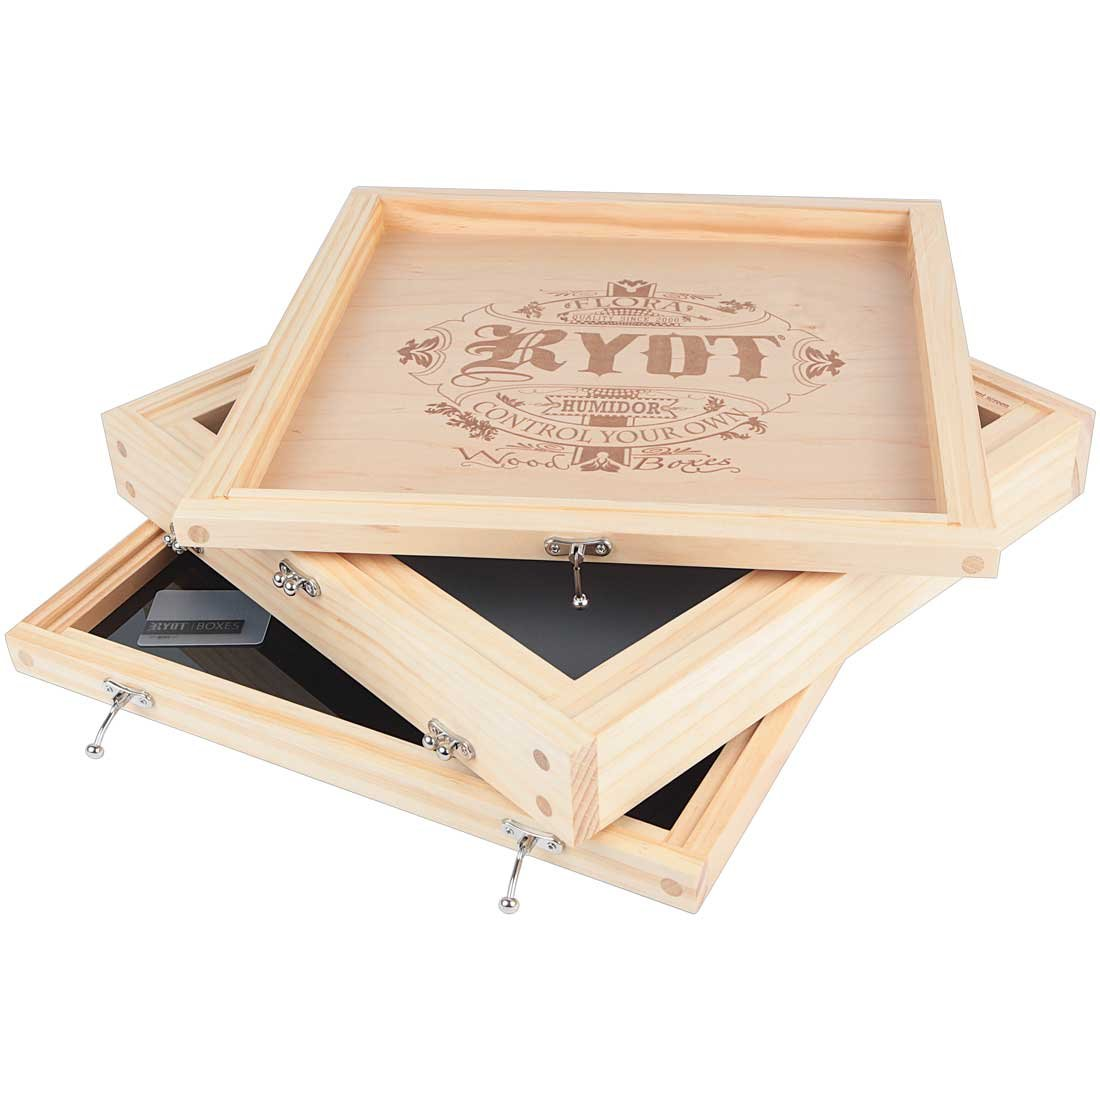 RYOT 15x15 ''Growers Box'' XL Natural Finish Wooden Pollen Sifting Box with Monofilament Screen by RYOT (Image #2)